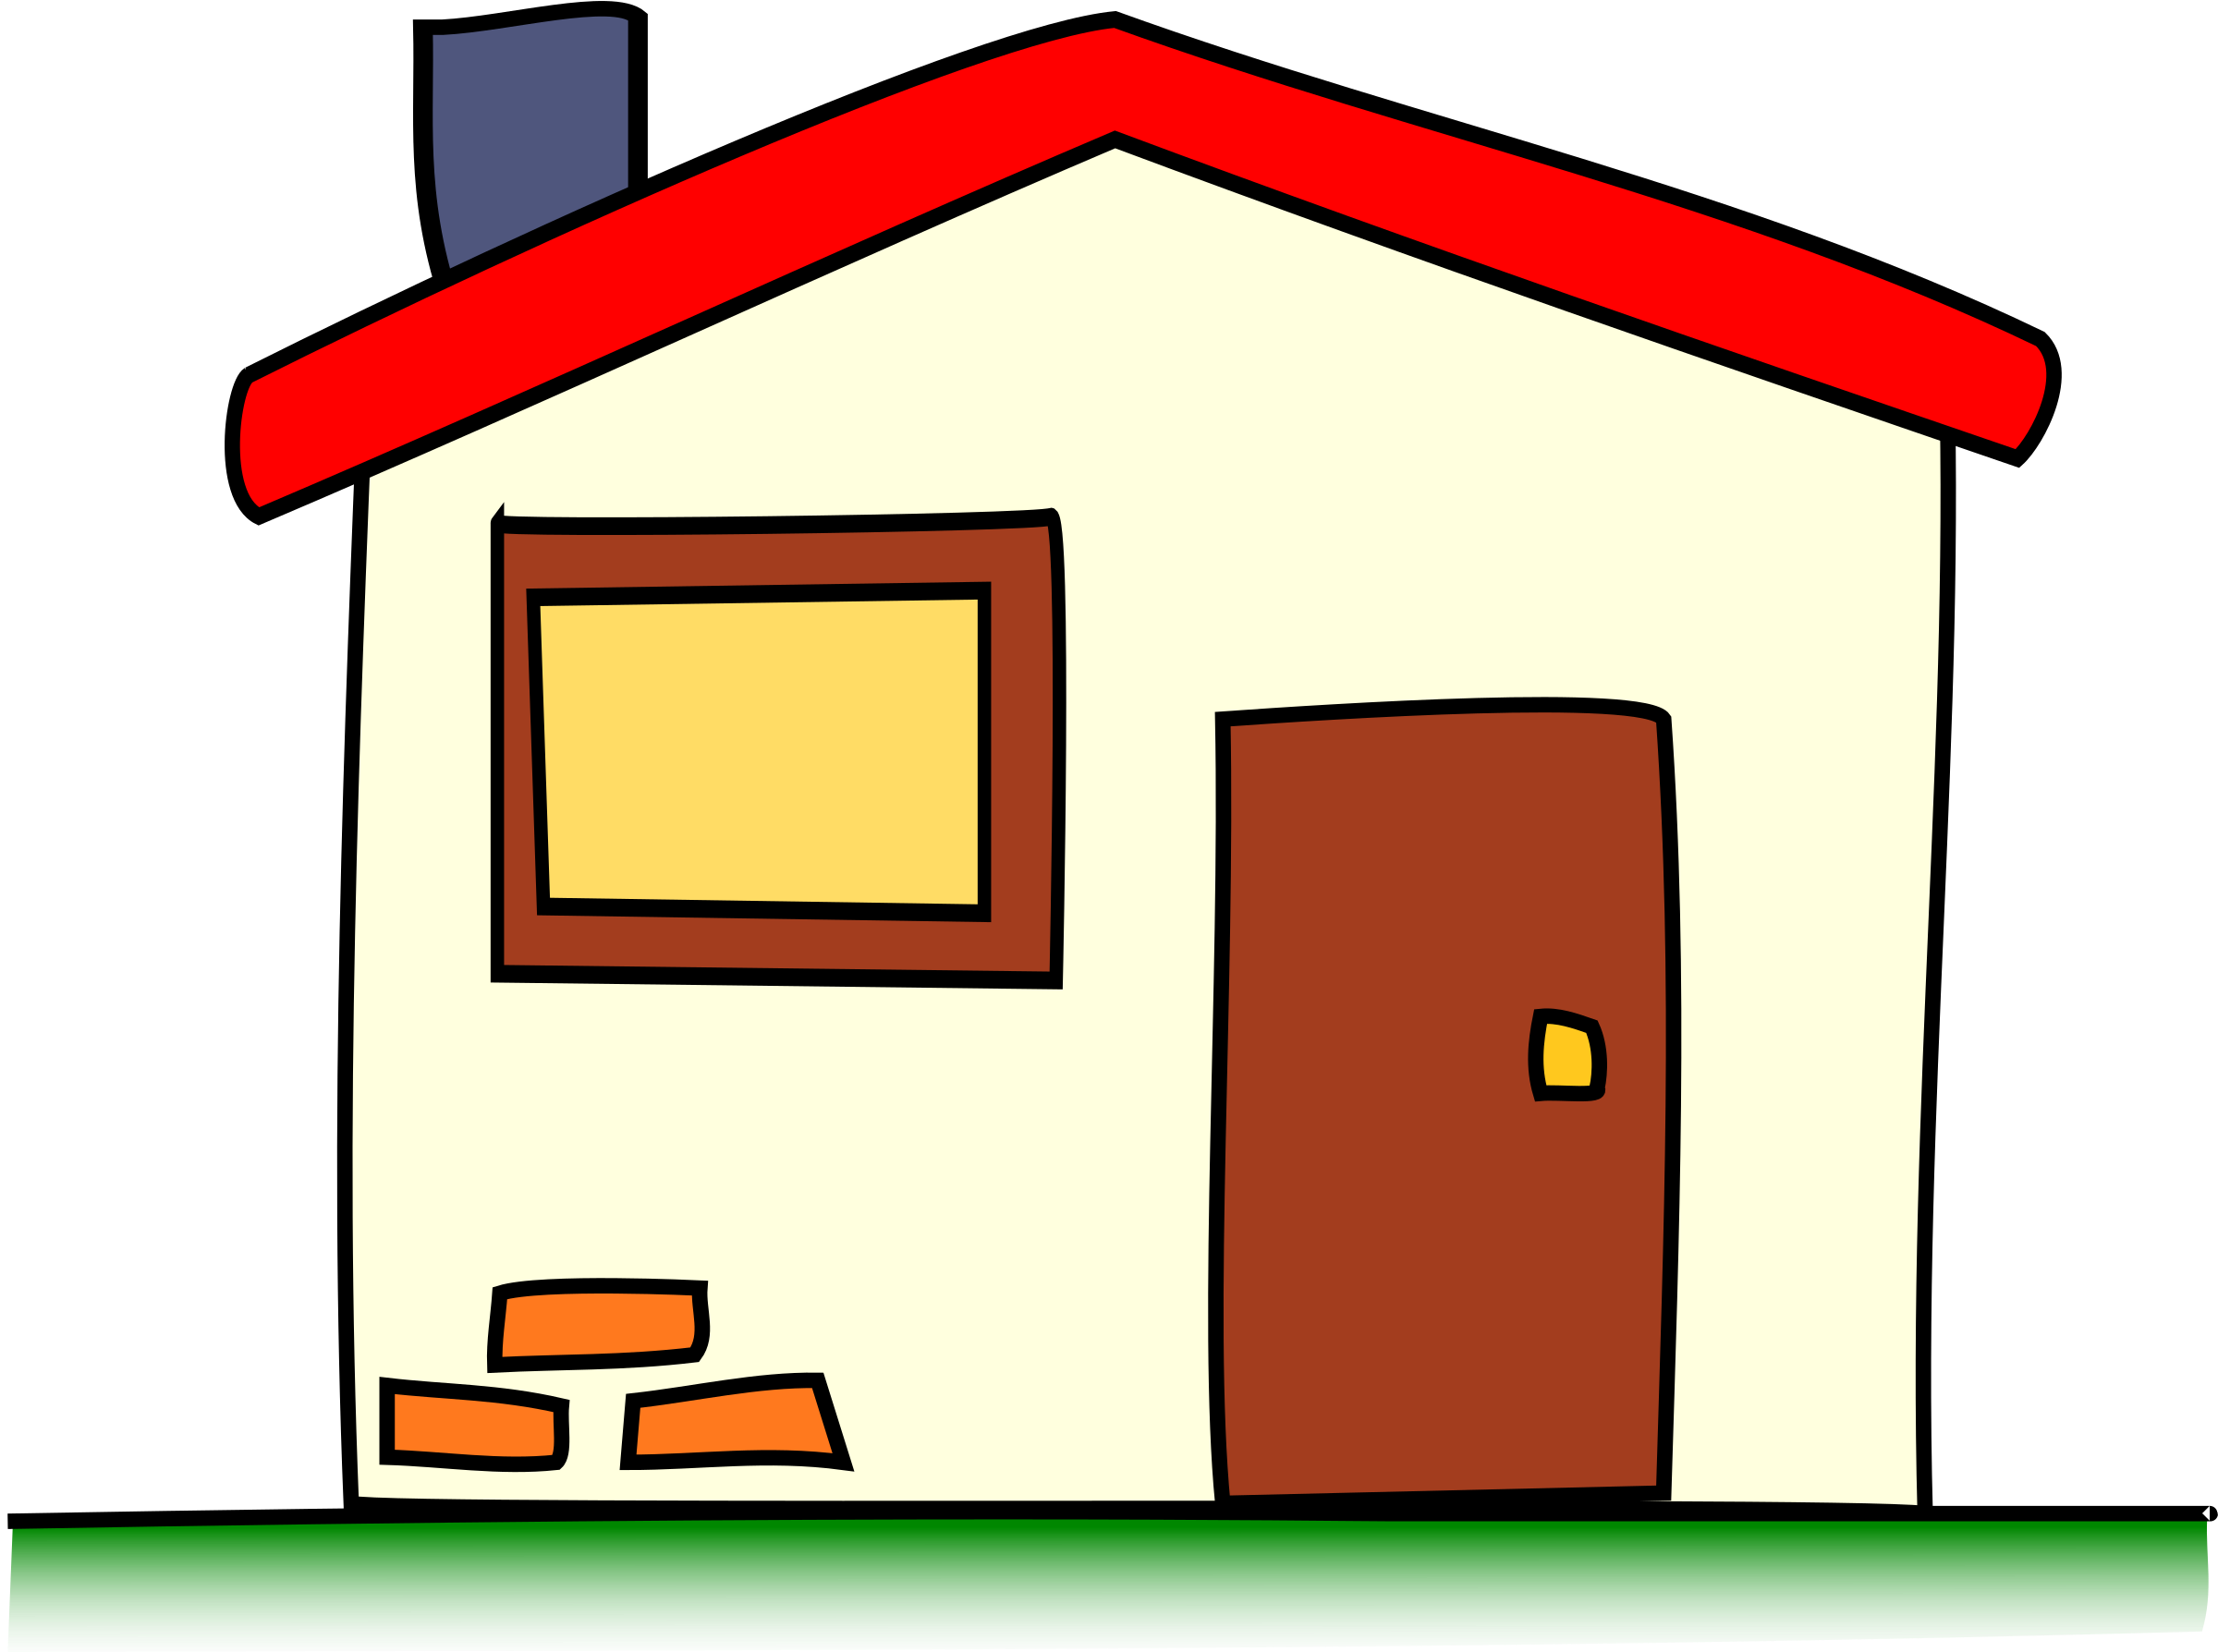 Myhome clip art. My home clipart station